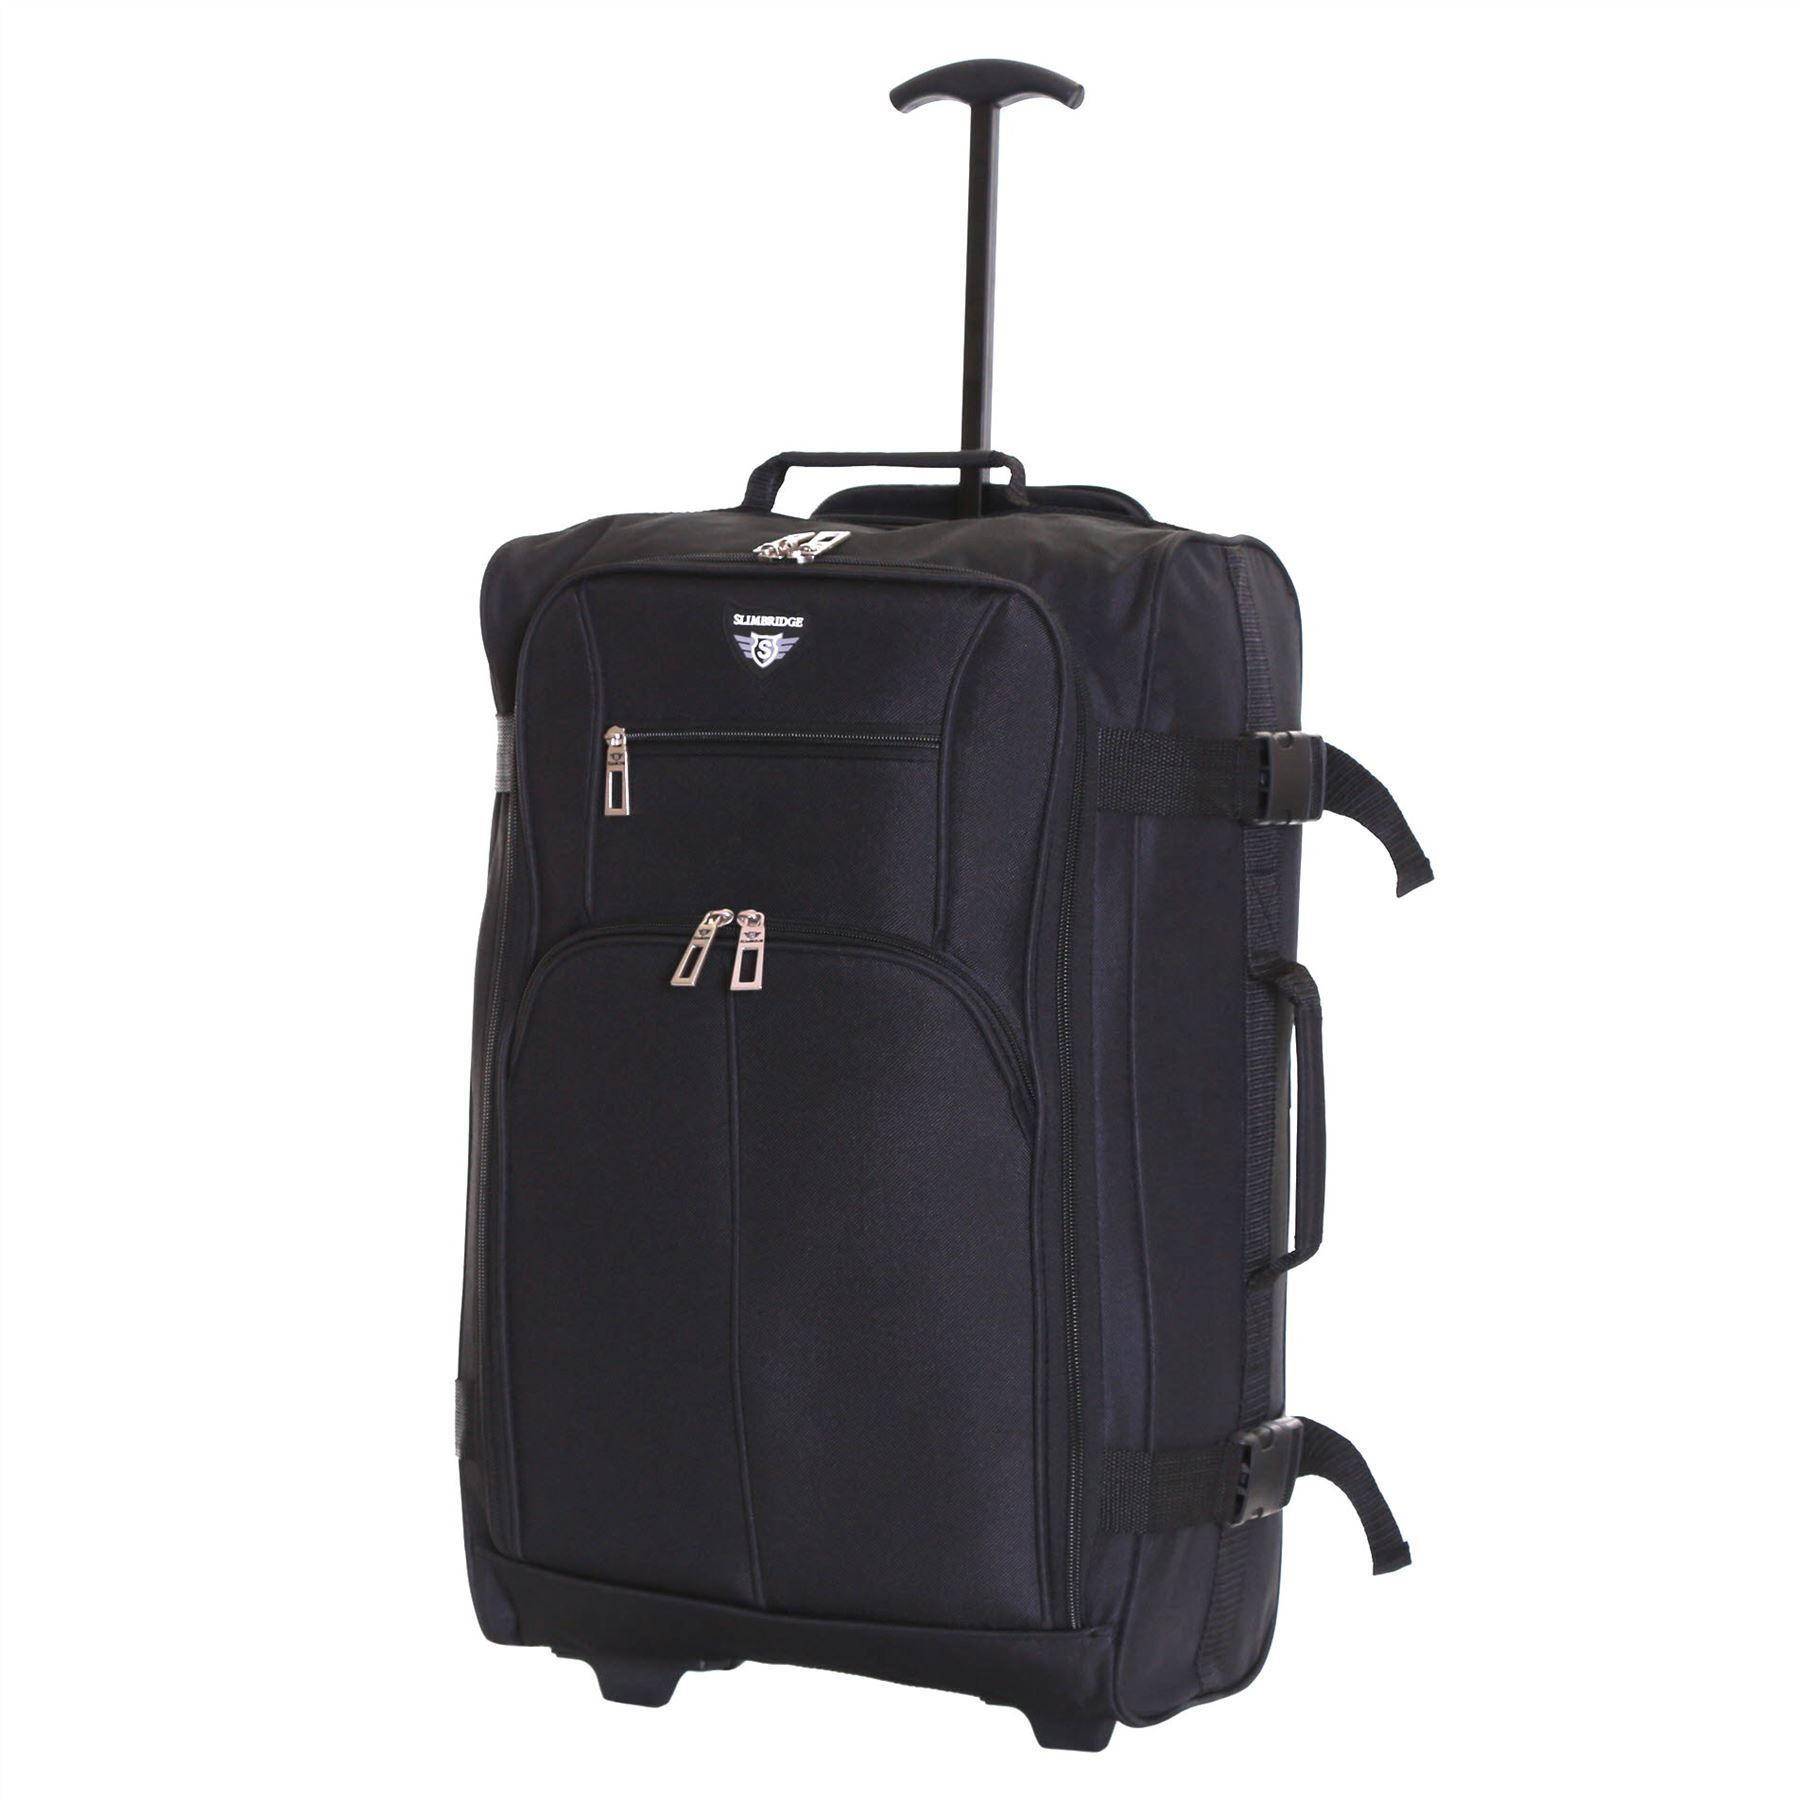 Ryanair-Easyjet-Set-of-2-Cabin-Approved-Hand-Trolley-Suitcases-Luggage-Case-Bags thumbnail 3